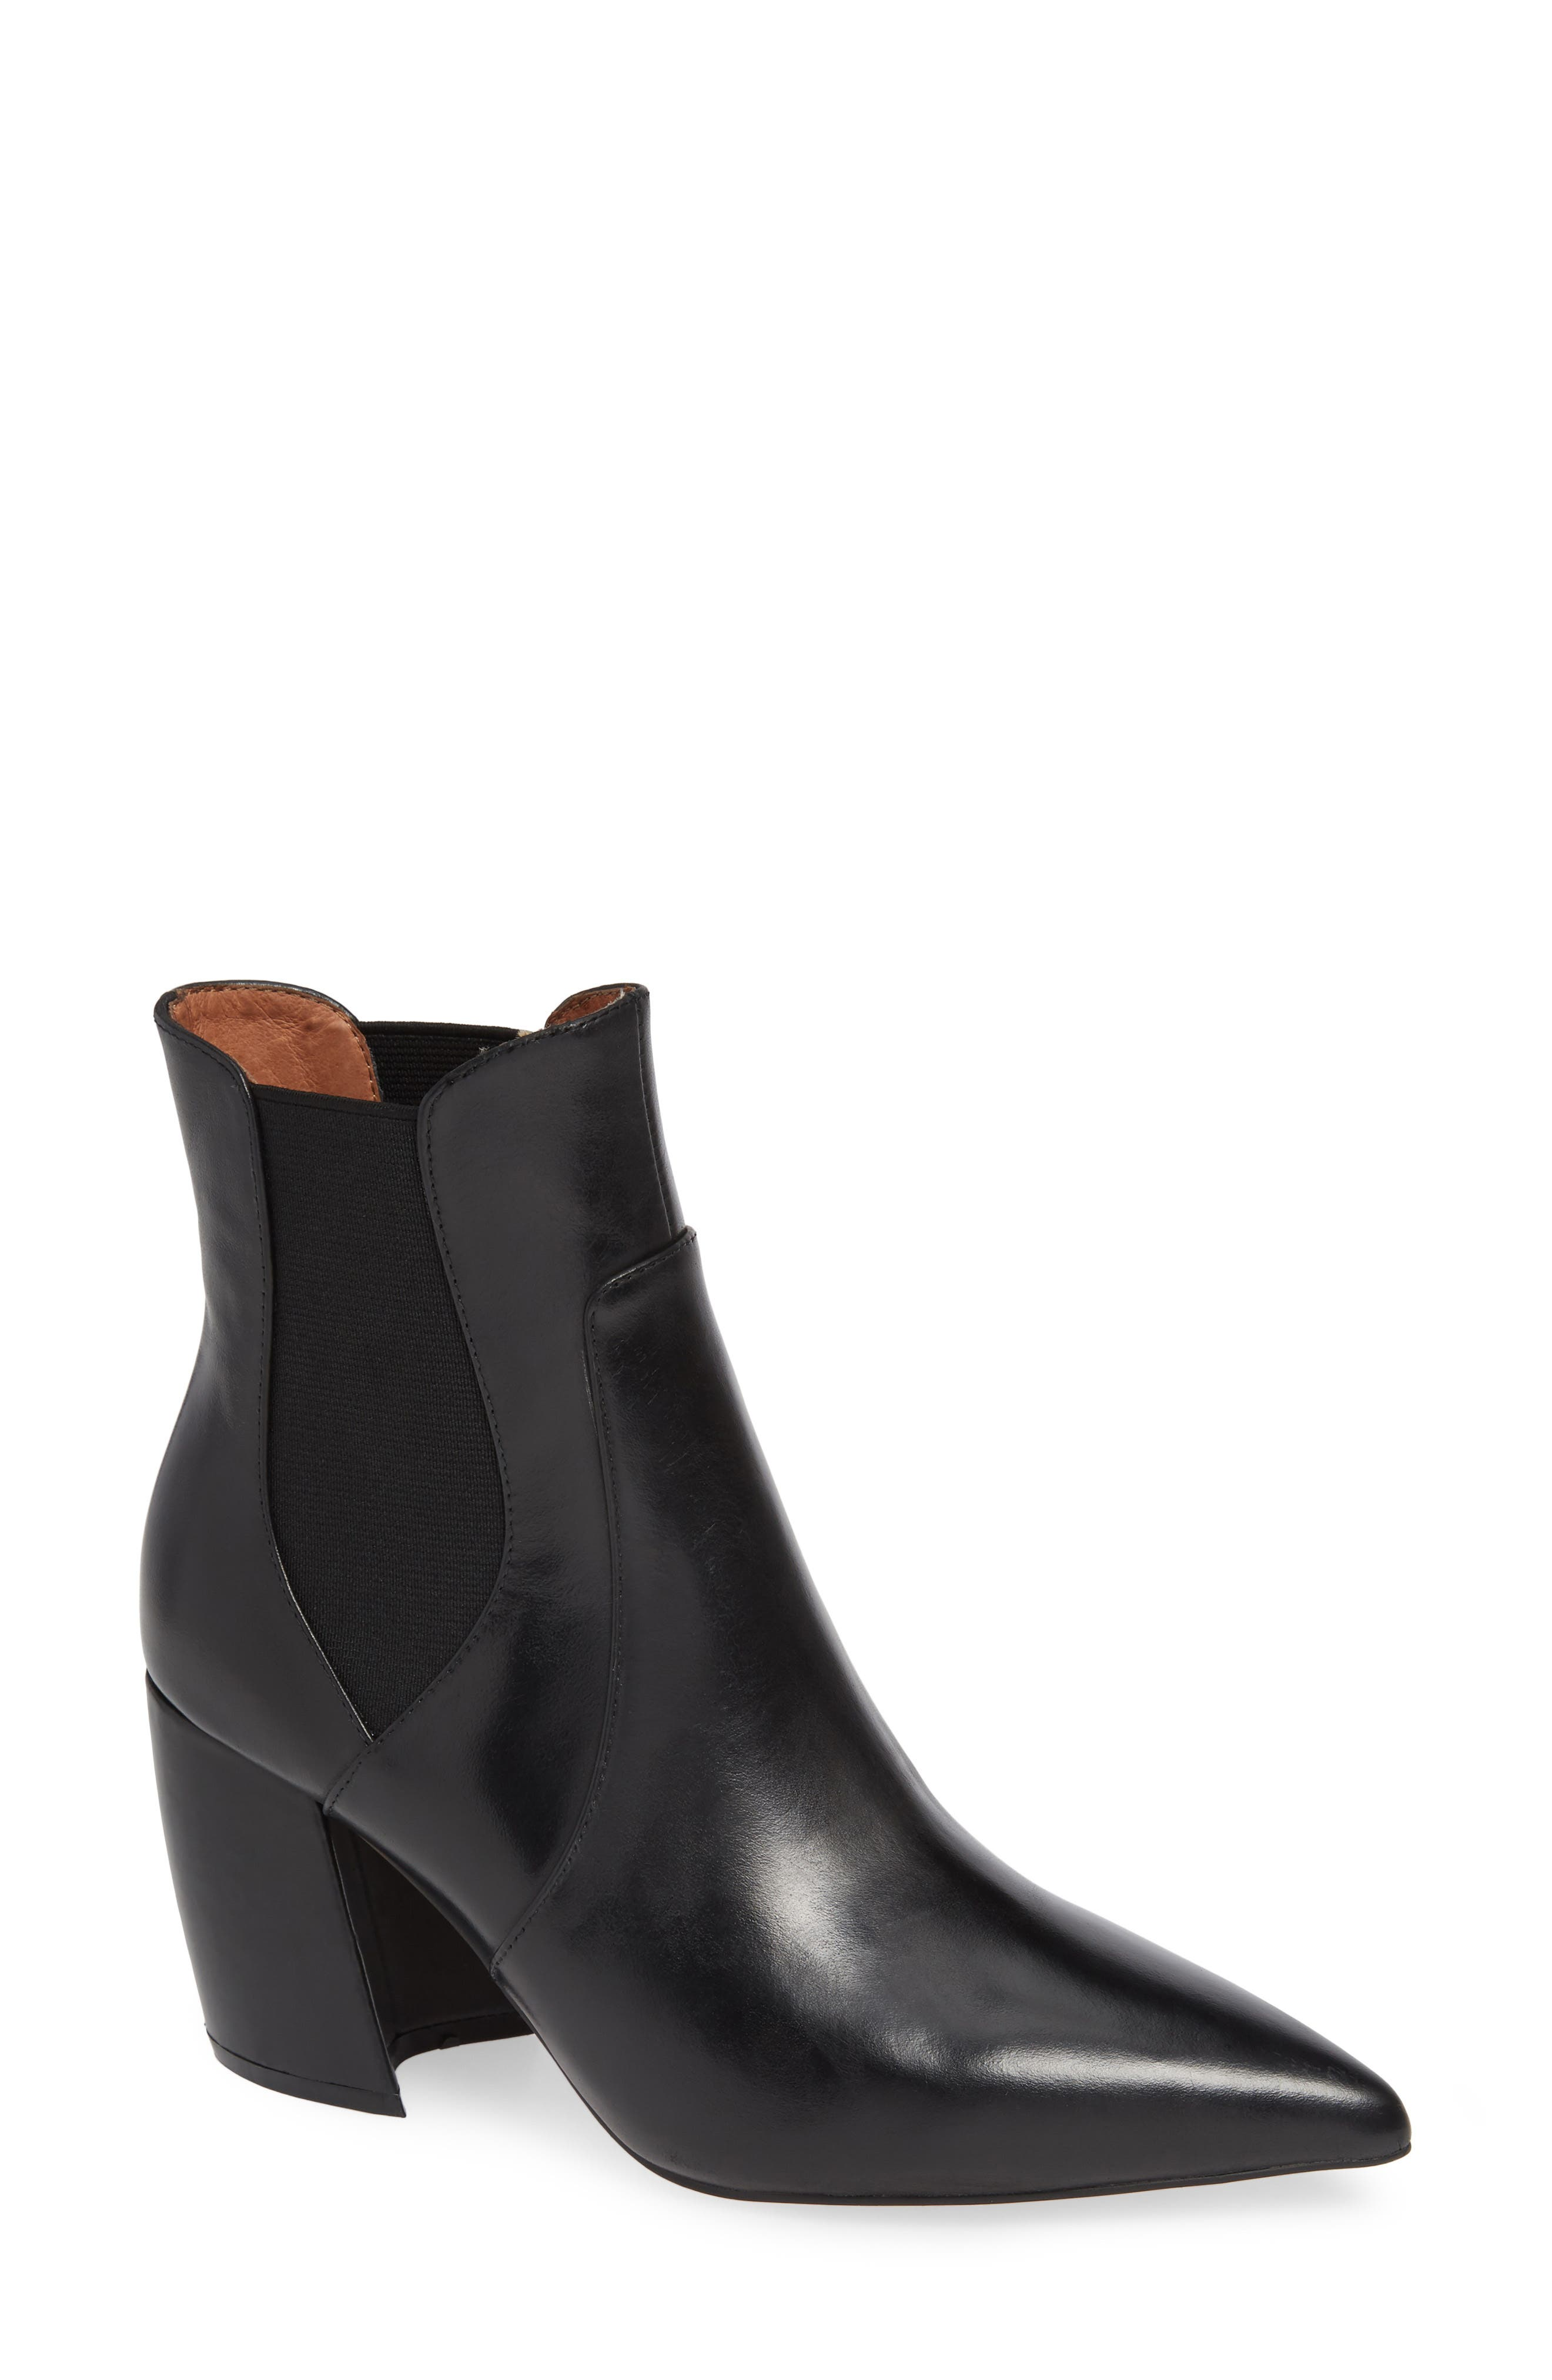 Akilina Bootie,                             Main thumbnail 1, color,                             BLACK LEATHER